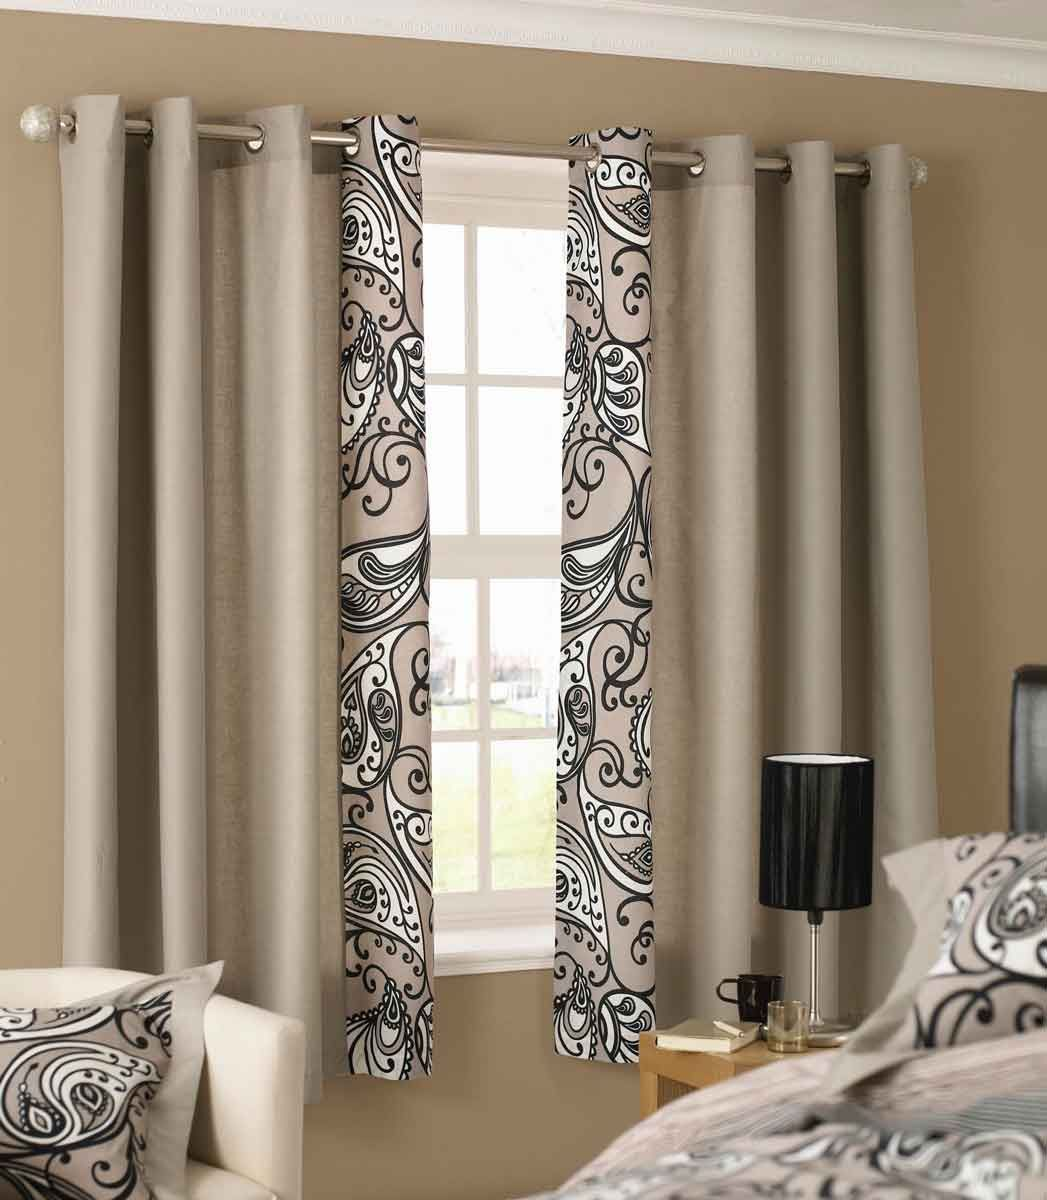 Perfect Curtains Design perfect best curtain design for living room Dress Your Windows In Classy And Timeless Curtains